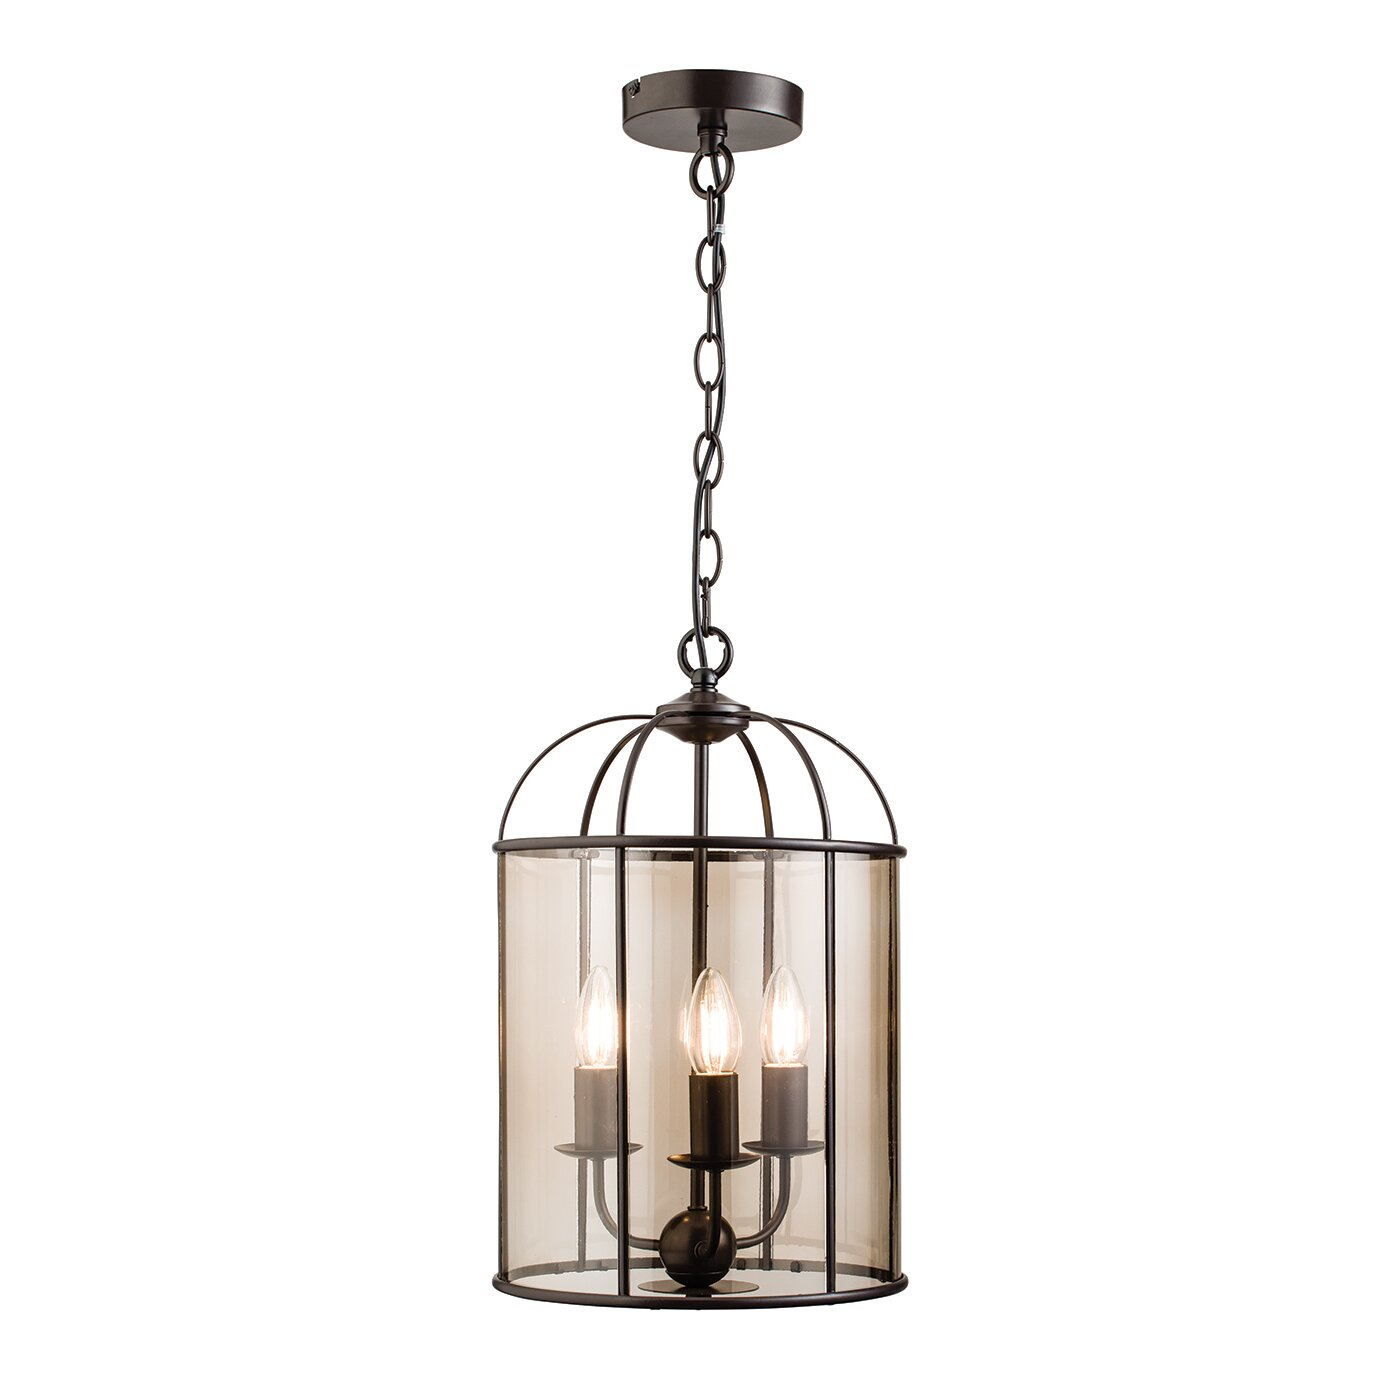 Endon Lighting Waterston 3 Light Foyer Pendant